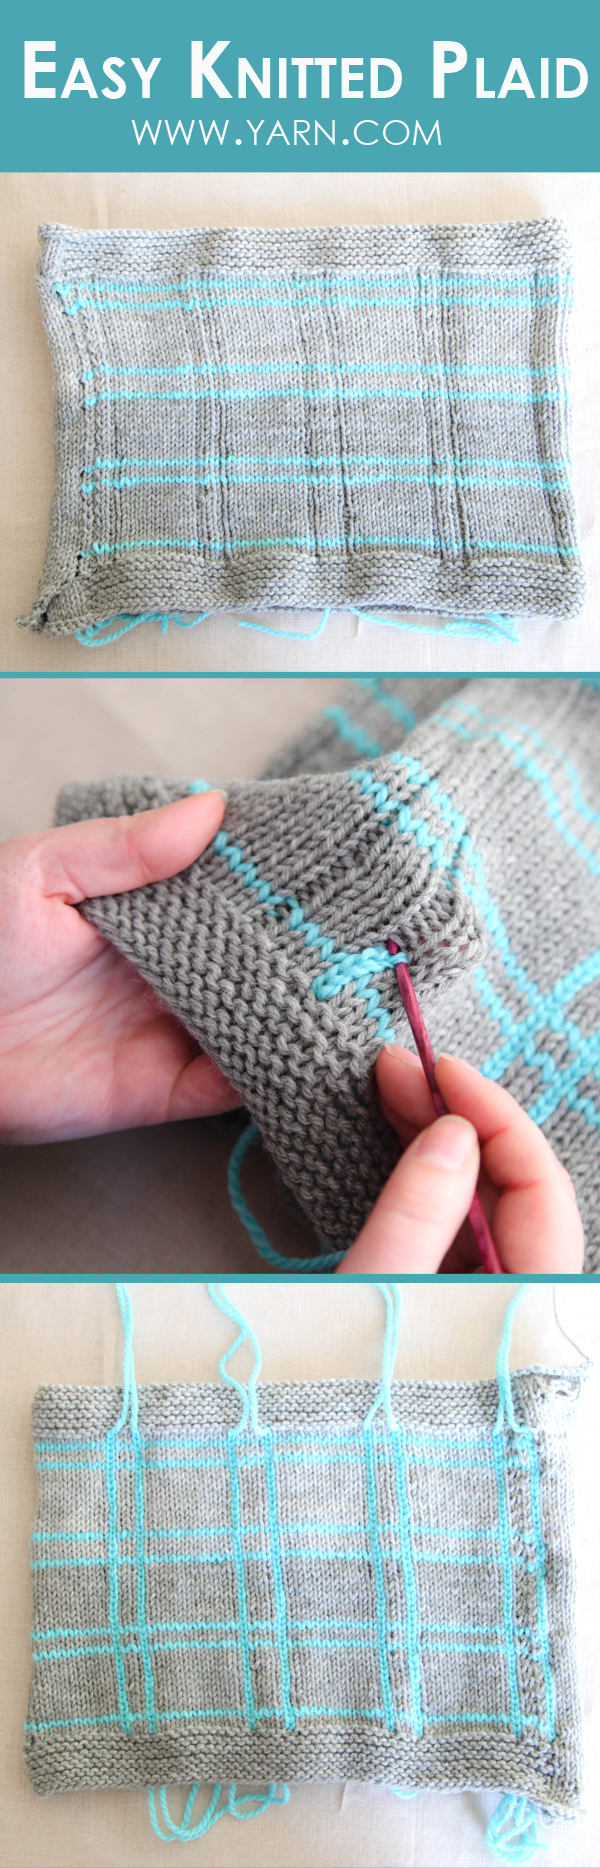 Easy Knitted Plaid Knitting Instructions Knitting